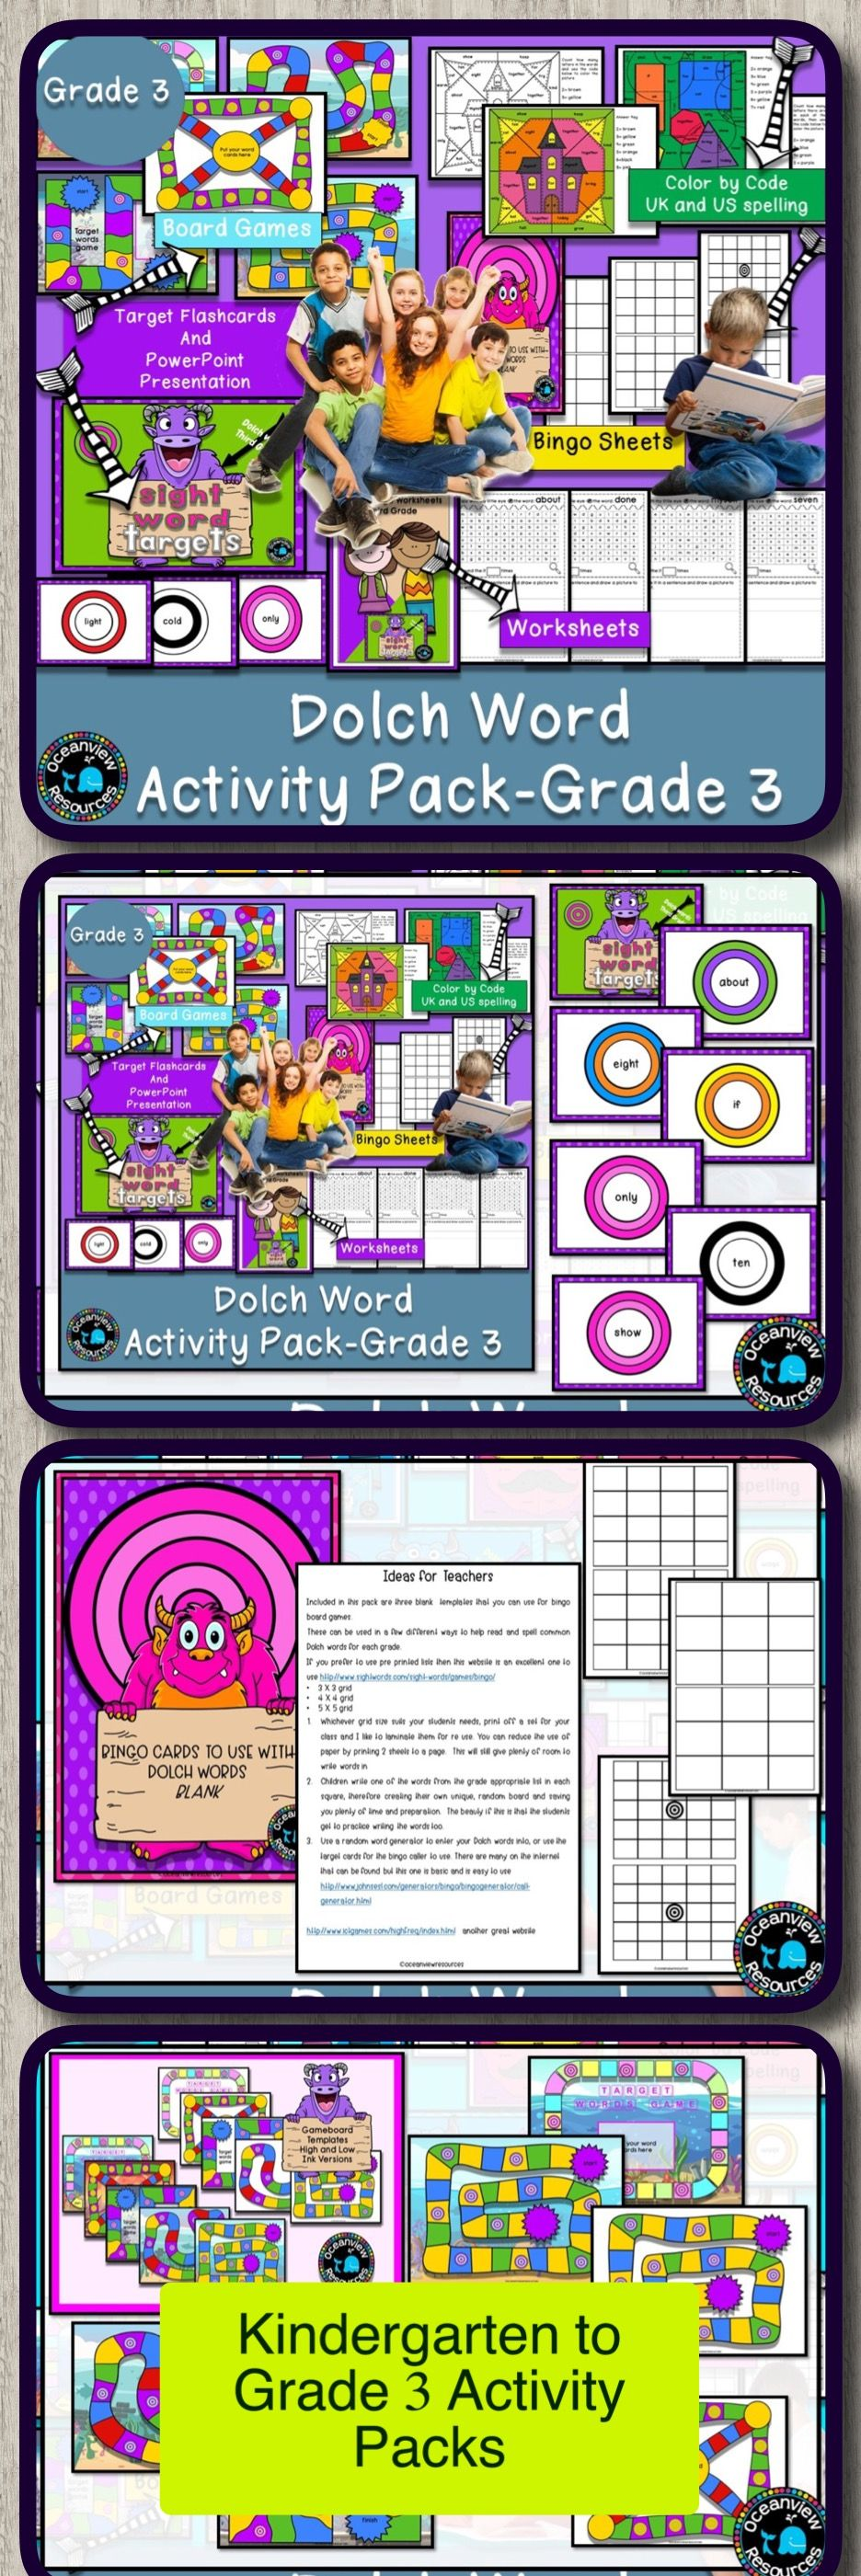 Dolch word Activity PackGrade 3 Dolch words activities